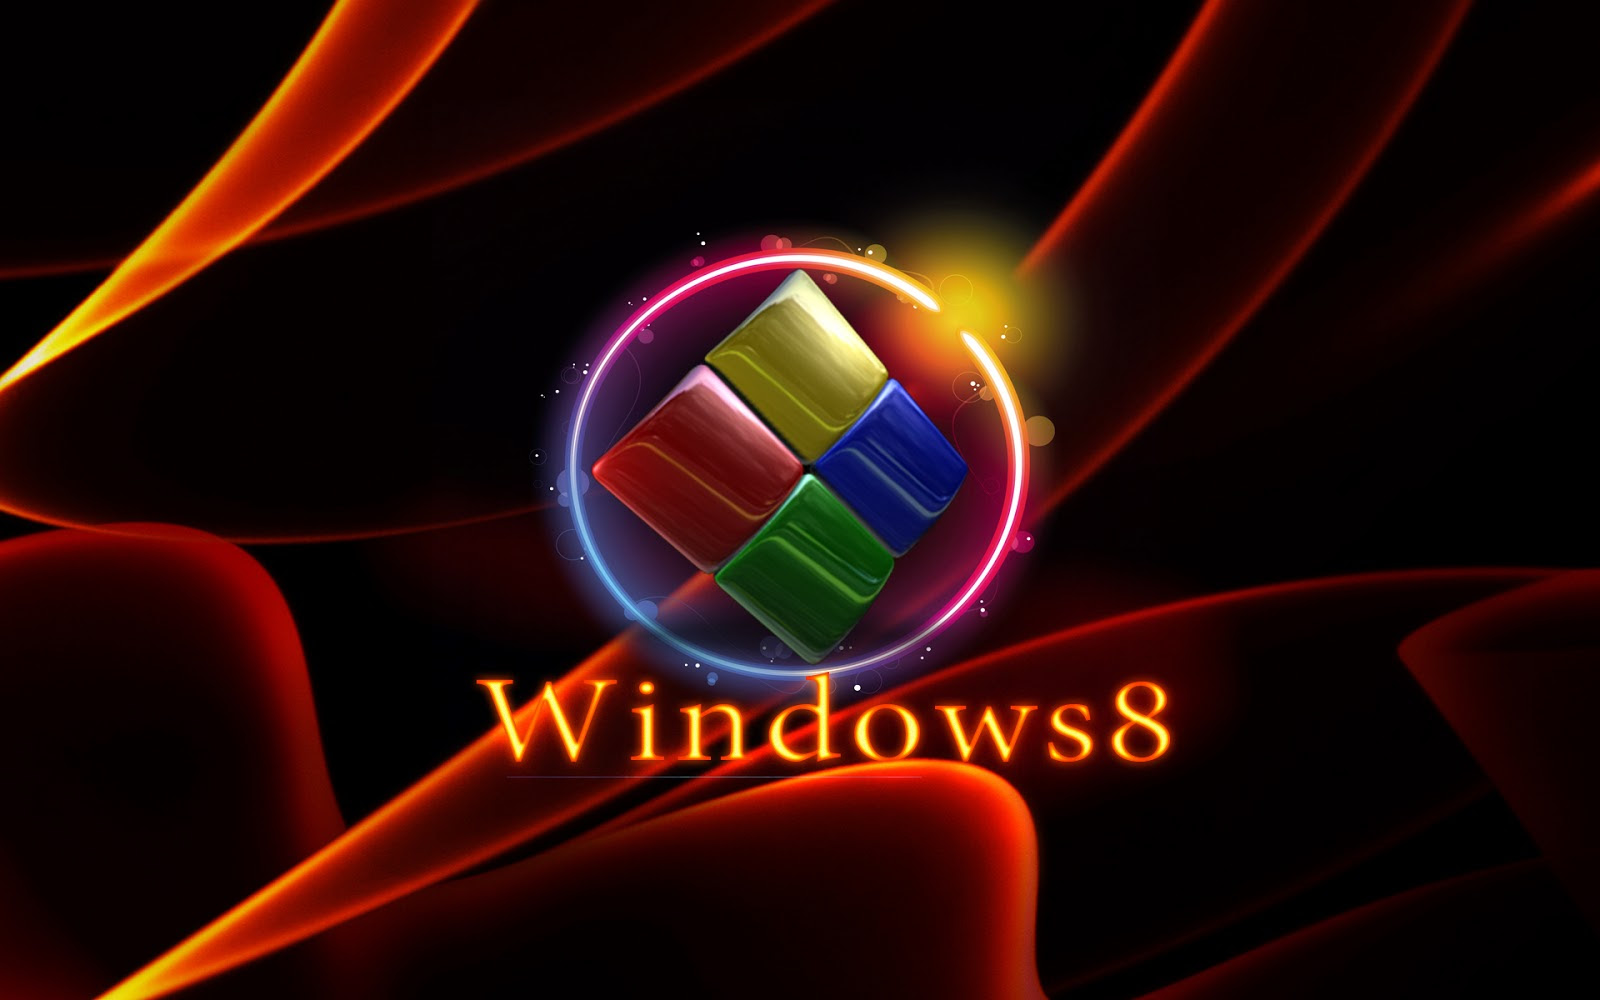 Hd Wallpapers For Windows 8 Laptop